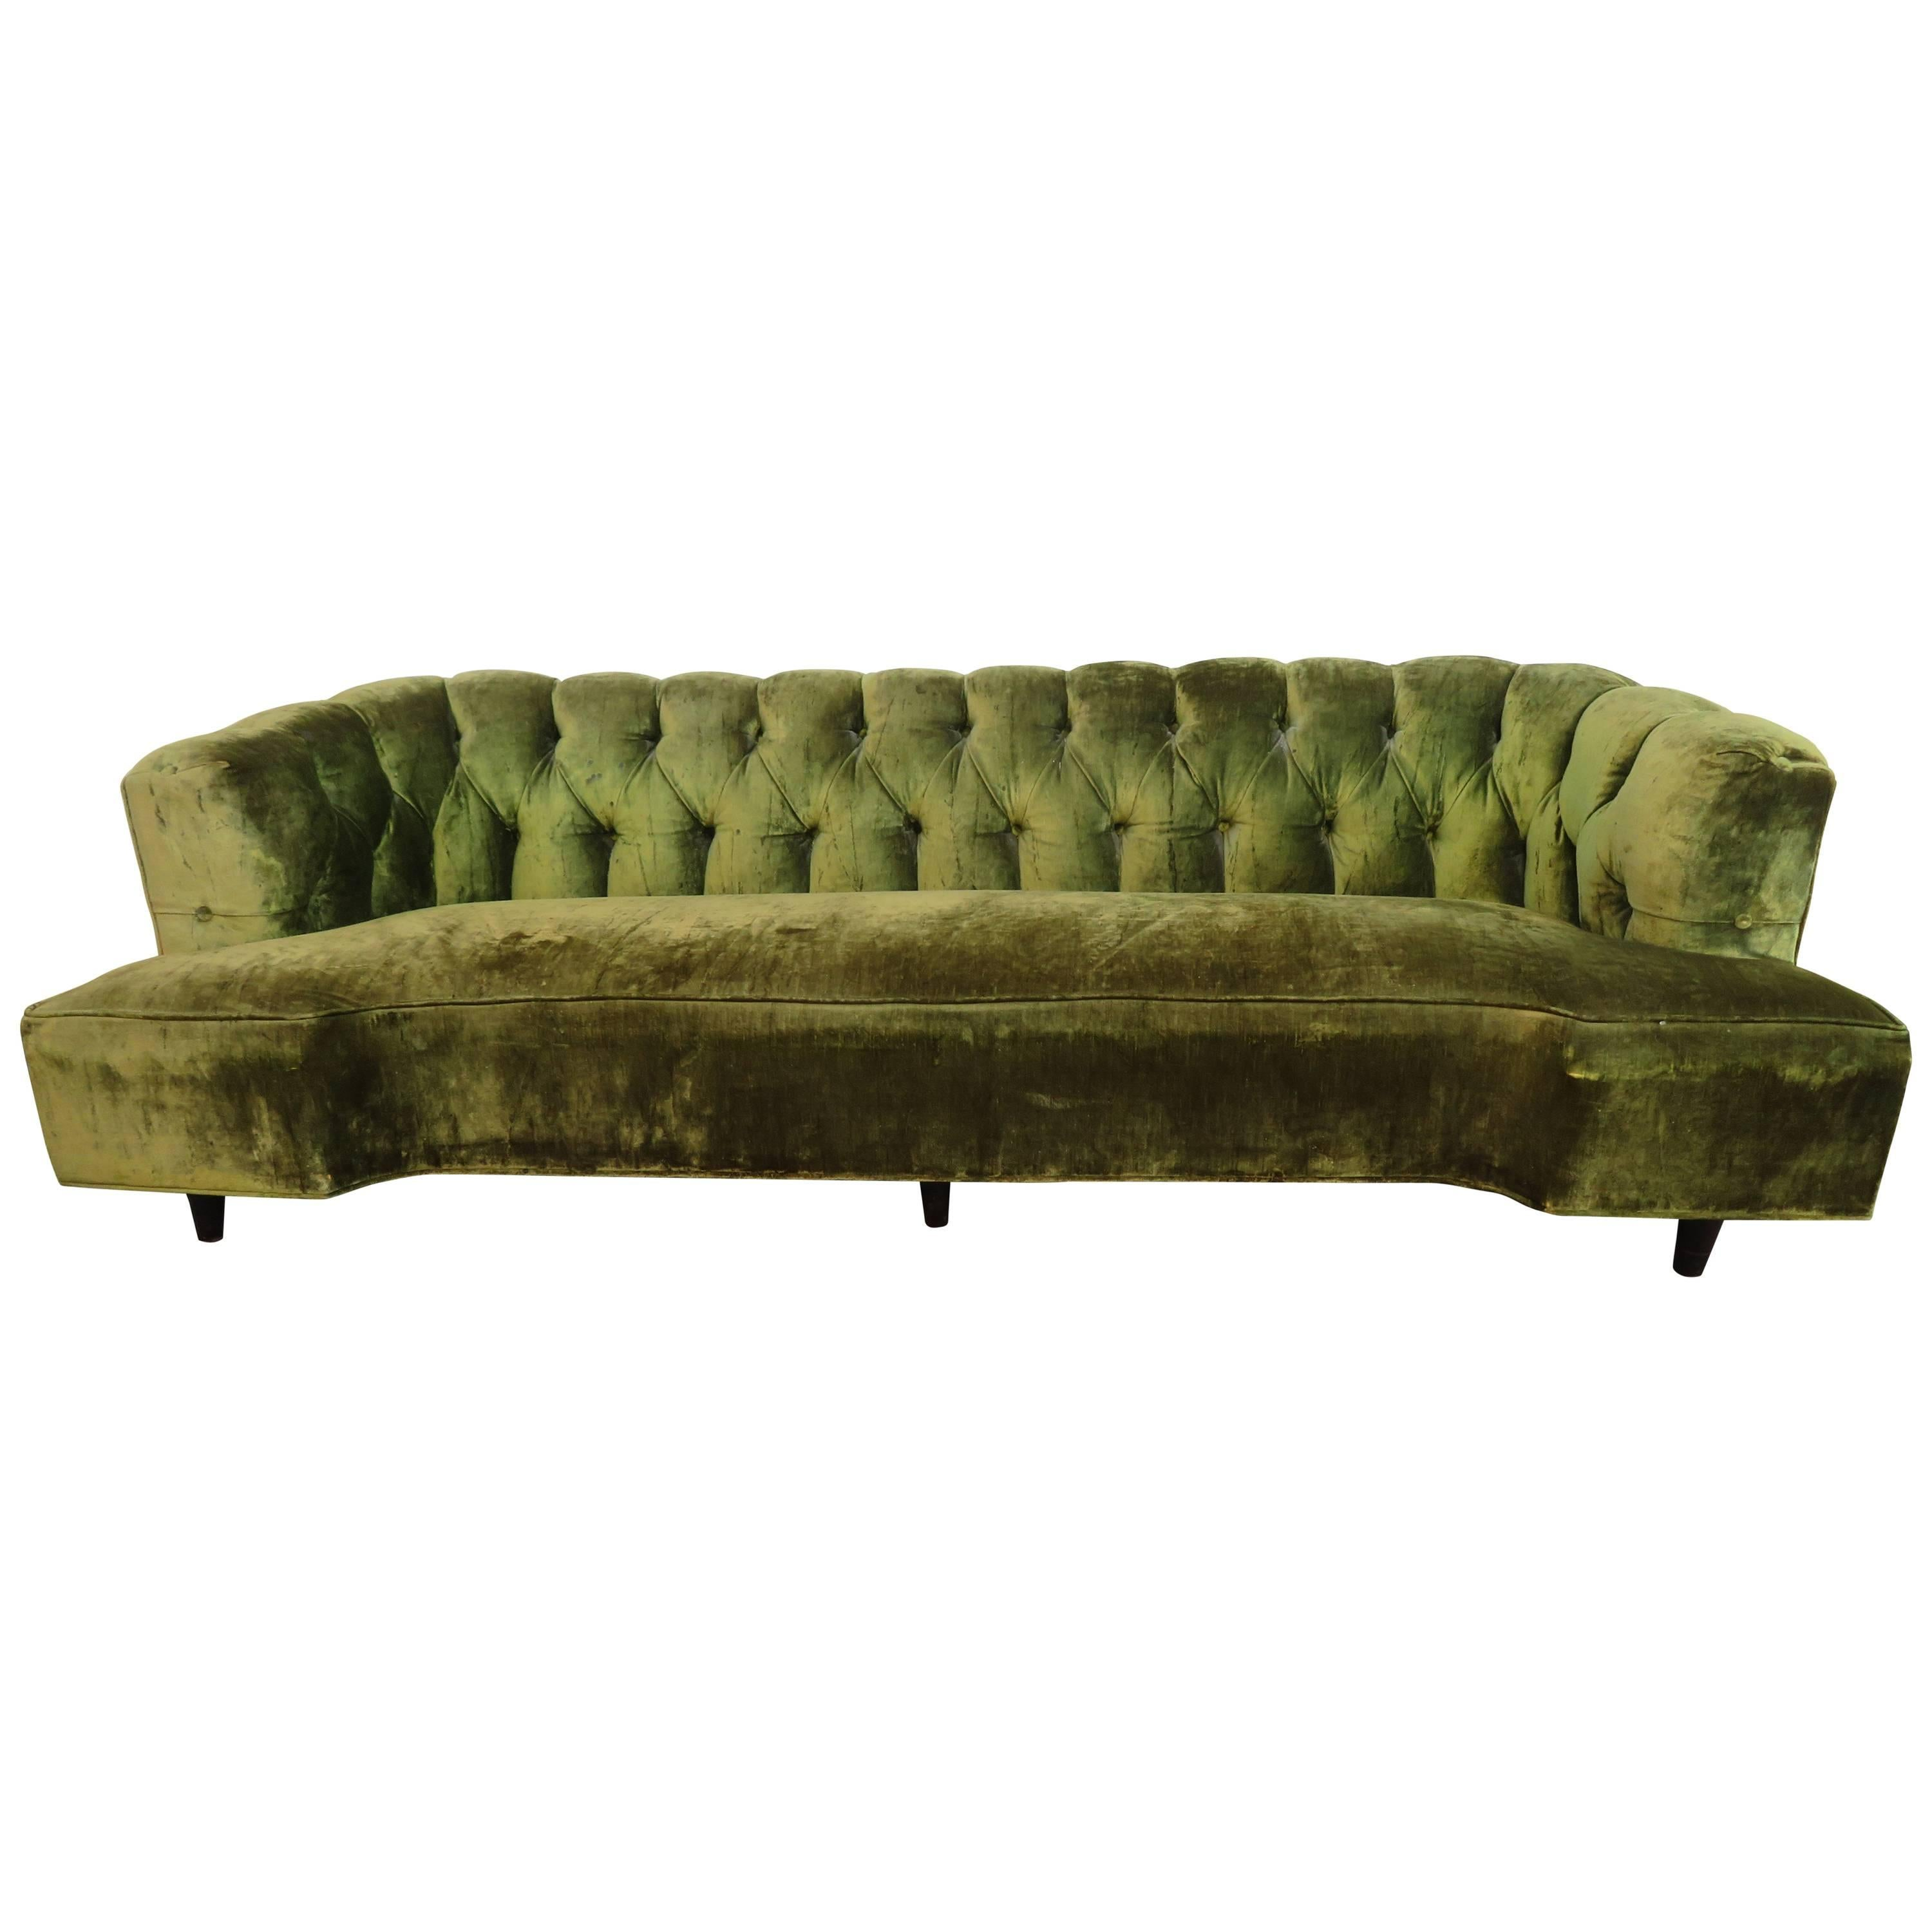 Superbe Gorgeous Dunbar Style Tufted Curved Sofa Mid Century Modern For Sale